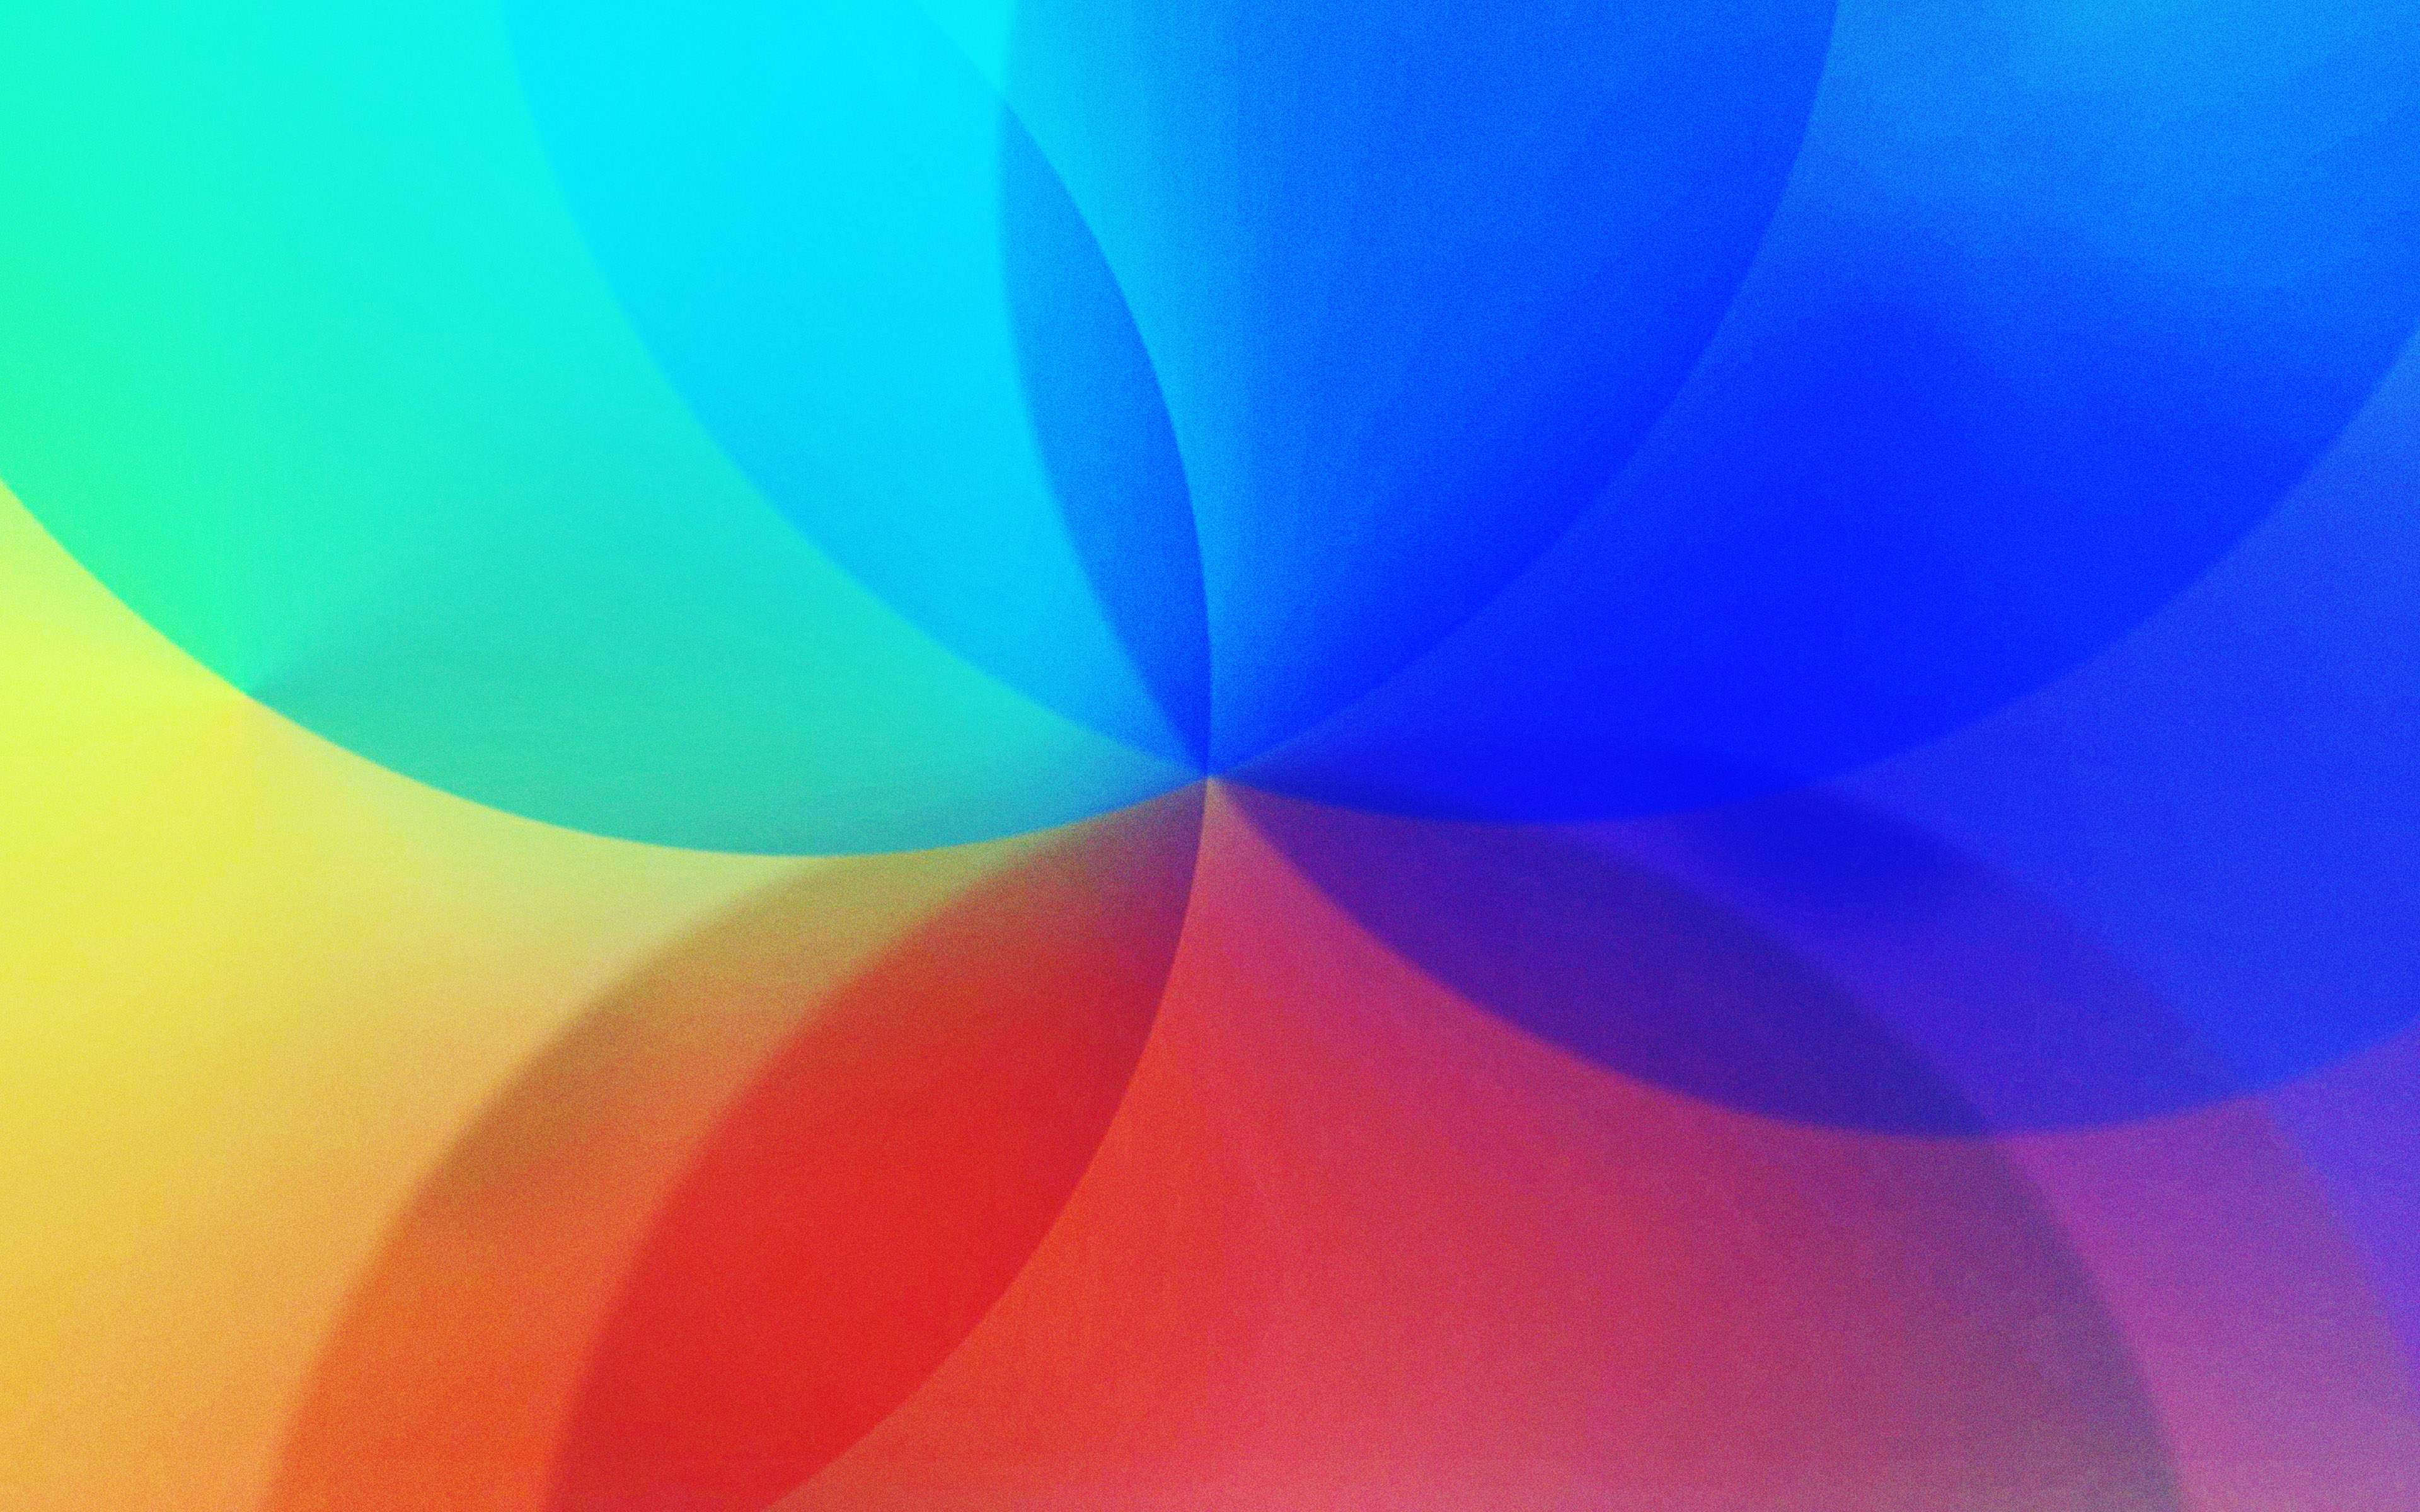 Wallpaper For Desktop Laptop Vd66 Lg G4 Awesome Rainbow